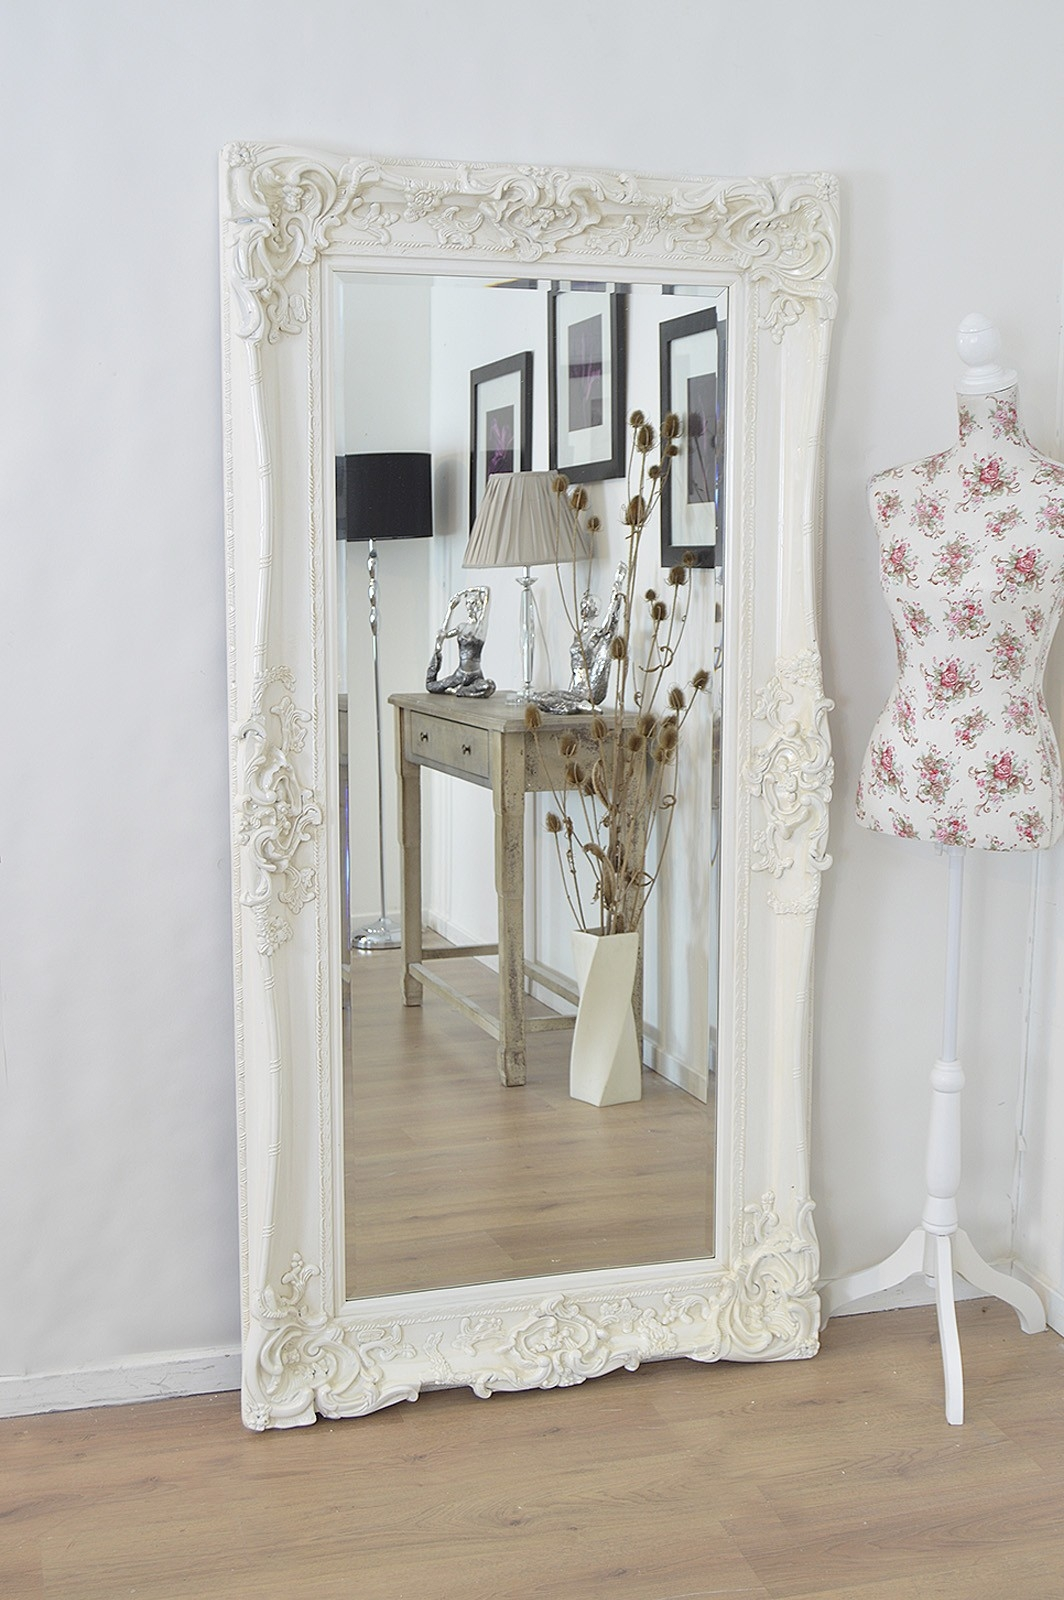 Large Ivory Antique Shab Chic Ornate Wall Mirror 6ft X 3ft With Regard To Shabby Chic Floor Standing Mirror (View 11 of 15)